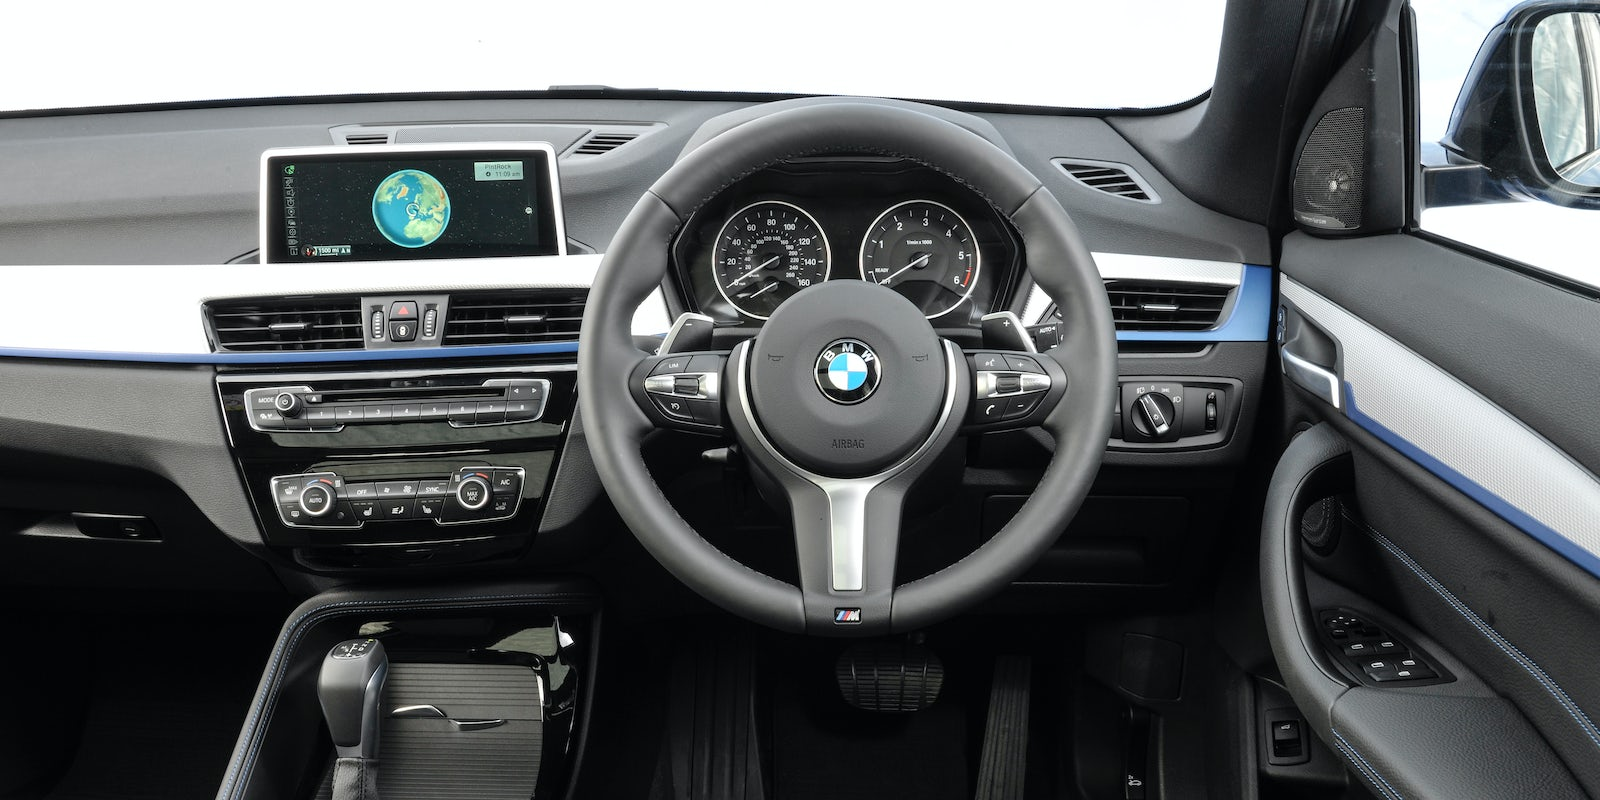 Bmw x1 interior and infotainment carwow for Interieur x1